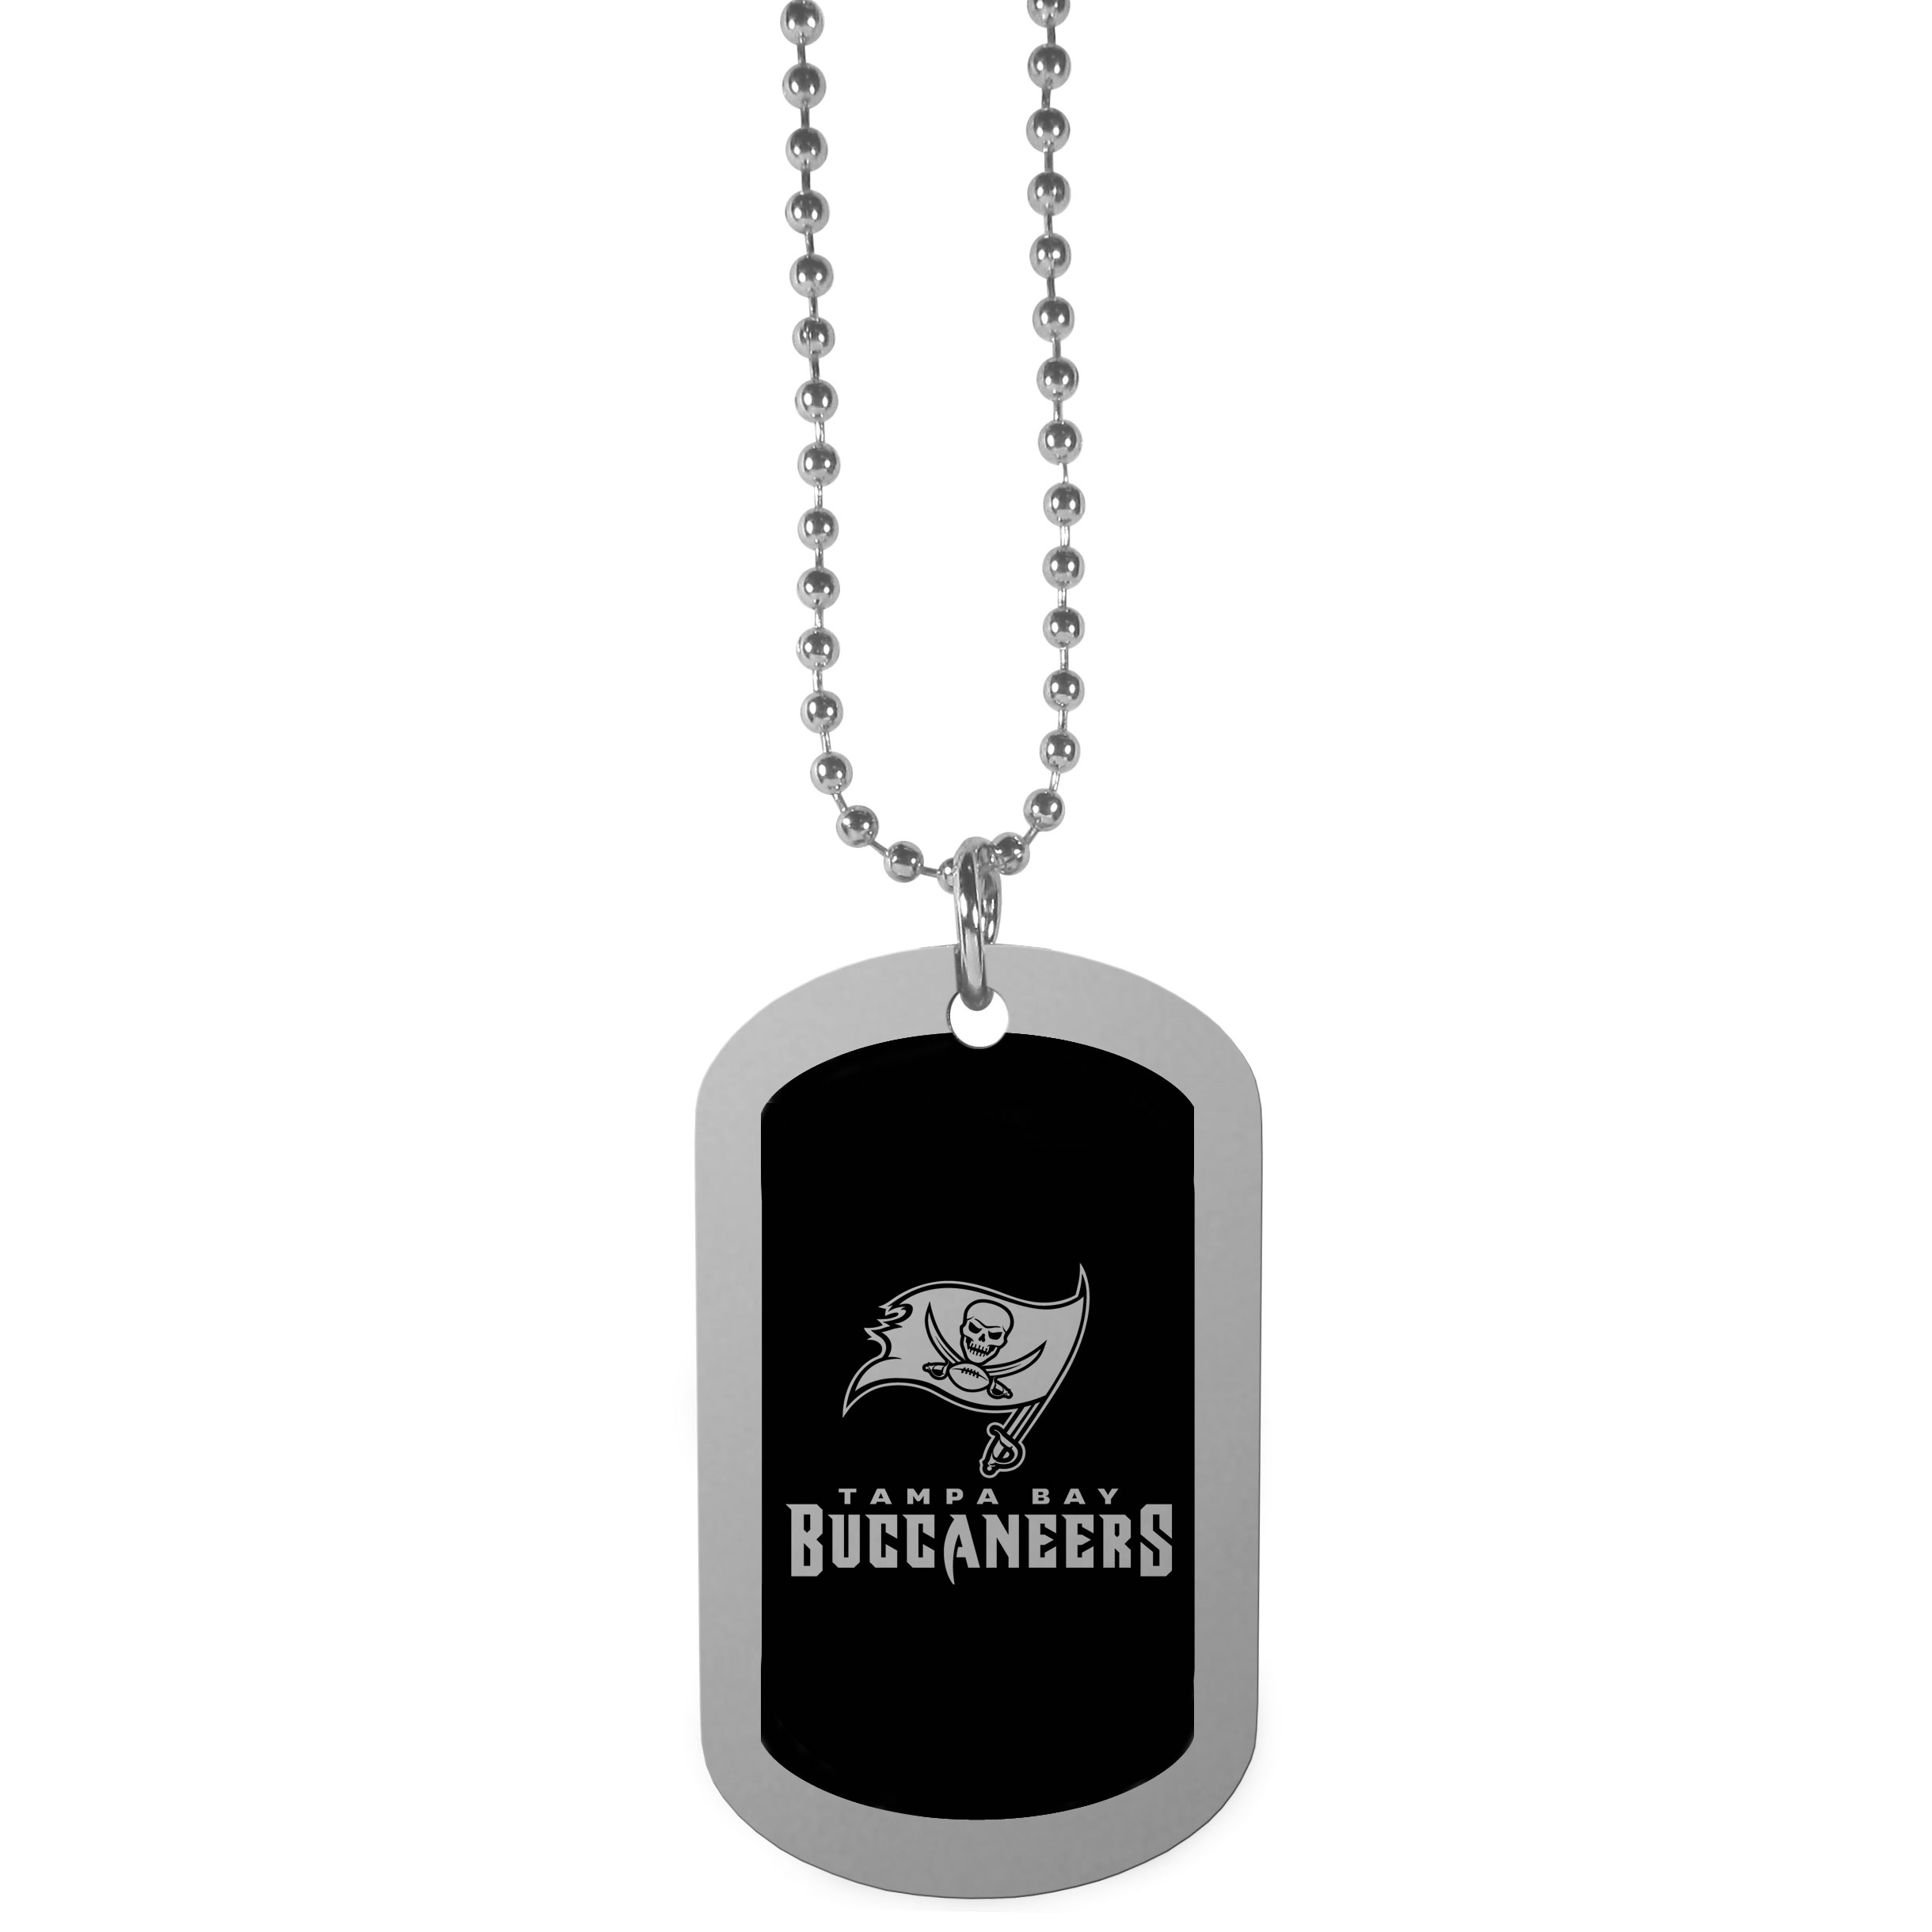 Tampa Bay Buccaneers Chrome Tag Necklace - Dog tag necklaces are a fashion statement that is here to stay. The sporty version of the classic tag features a black printed over a high polish tag to create a bold and sporty look. The tag comes on a 26 inch ball chain with a ball and joint clasp. Any Tampa Bay Buccaneers would be proud to wear this attractive fashion accessory.